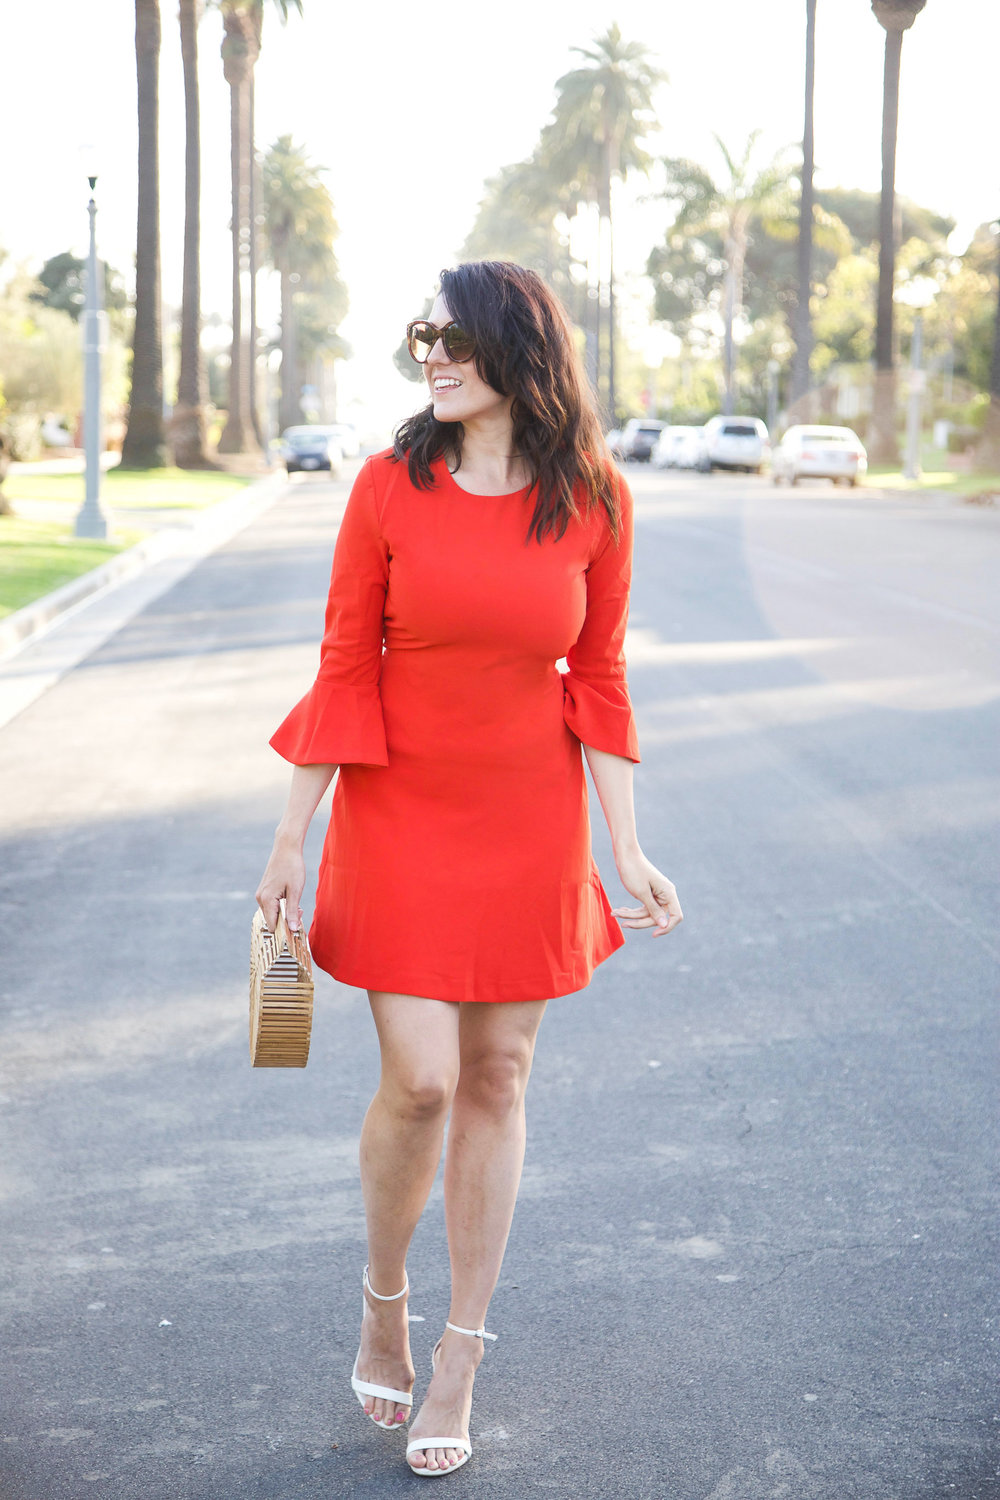 Lucy-Paris-Red-Bell-Sleeved-Dress10.jpg